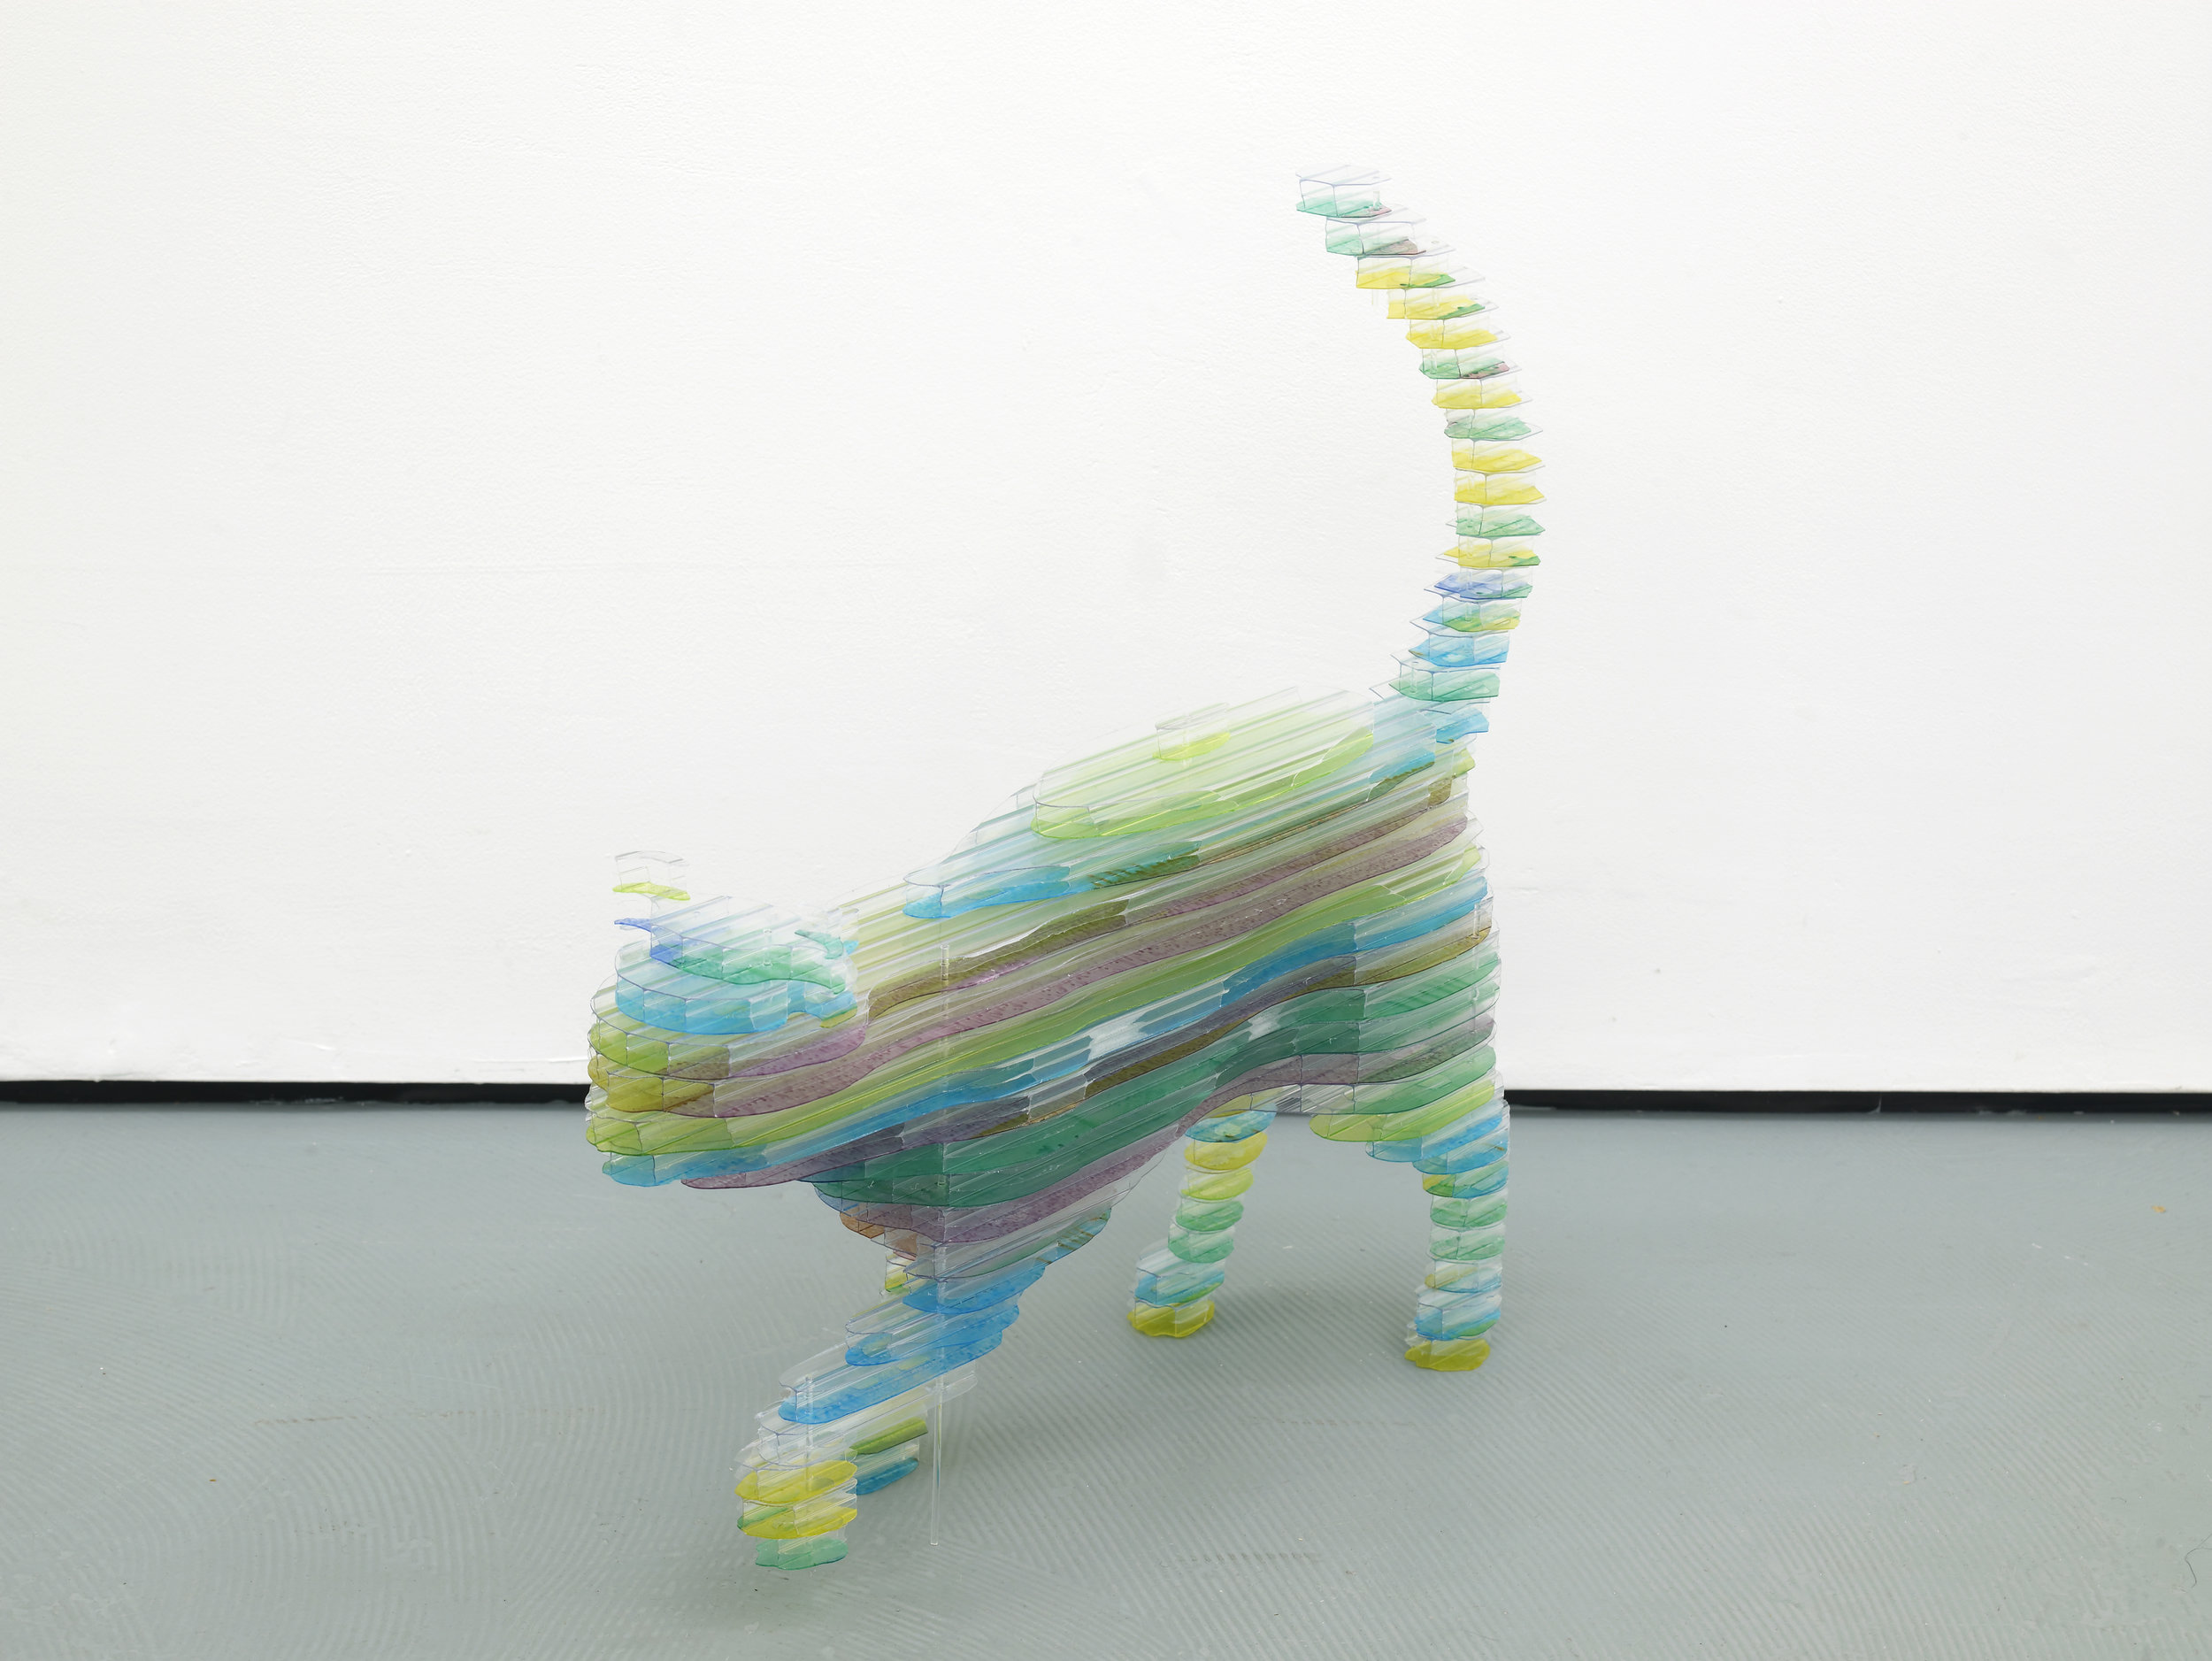 CAPTCHA No. 48 - Domestic Cat (walking)  2016  Multi-wall polycarbonate  66 x 66 x 20 cm / 25.9 x 25.9 x 7.8 in